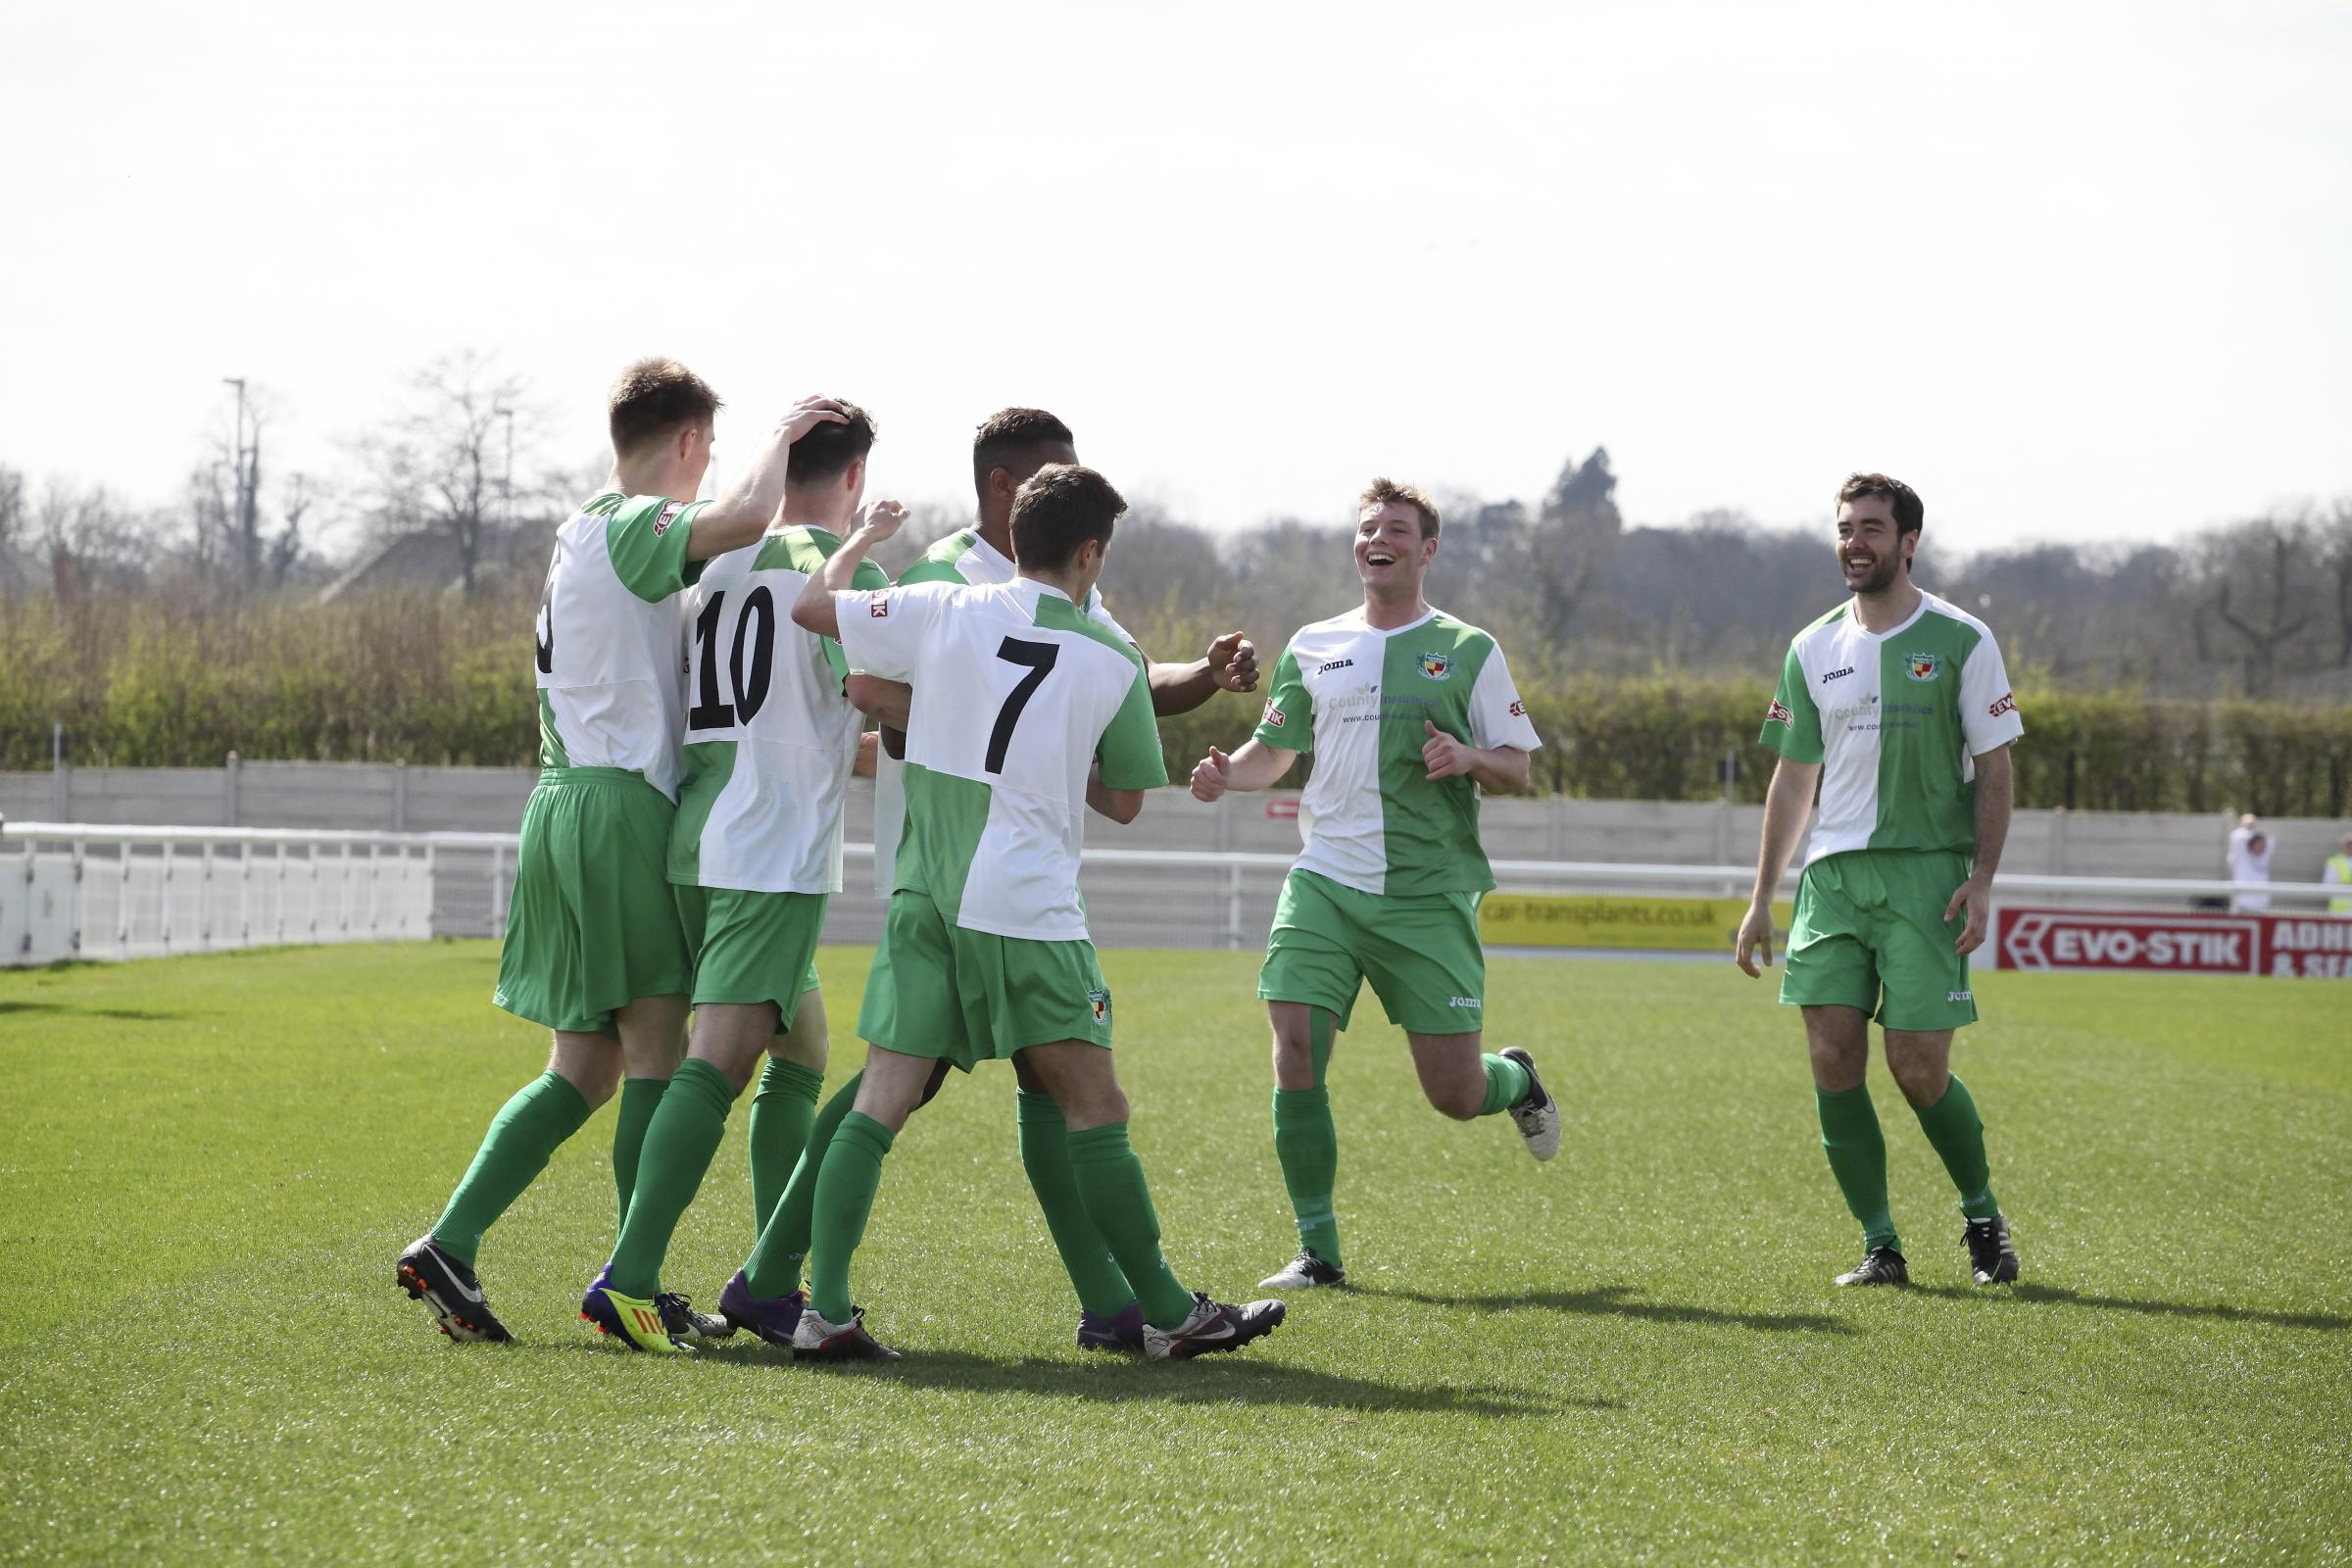 Nantwich celebrate their victory. Picture: Simon J Newbury Photography